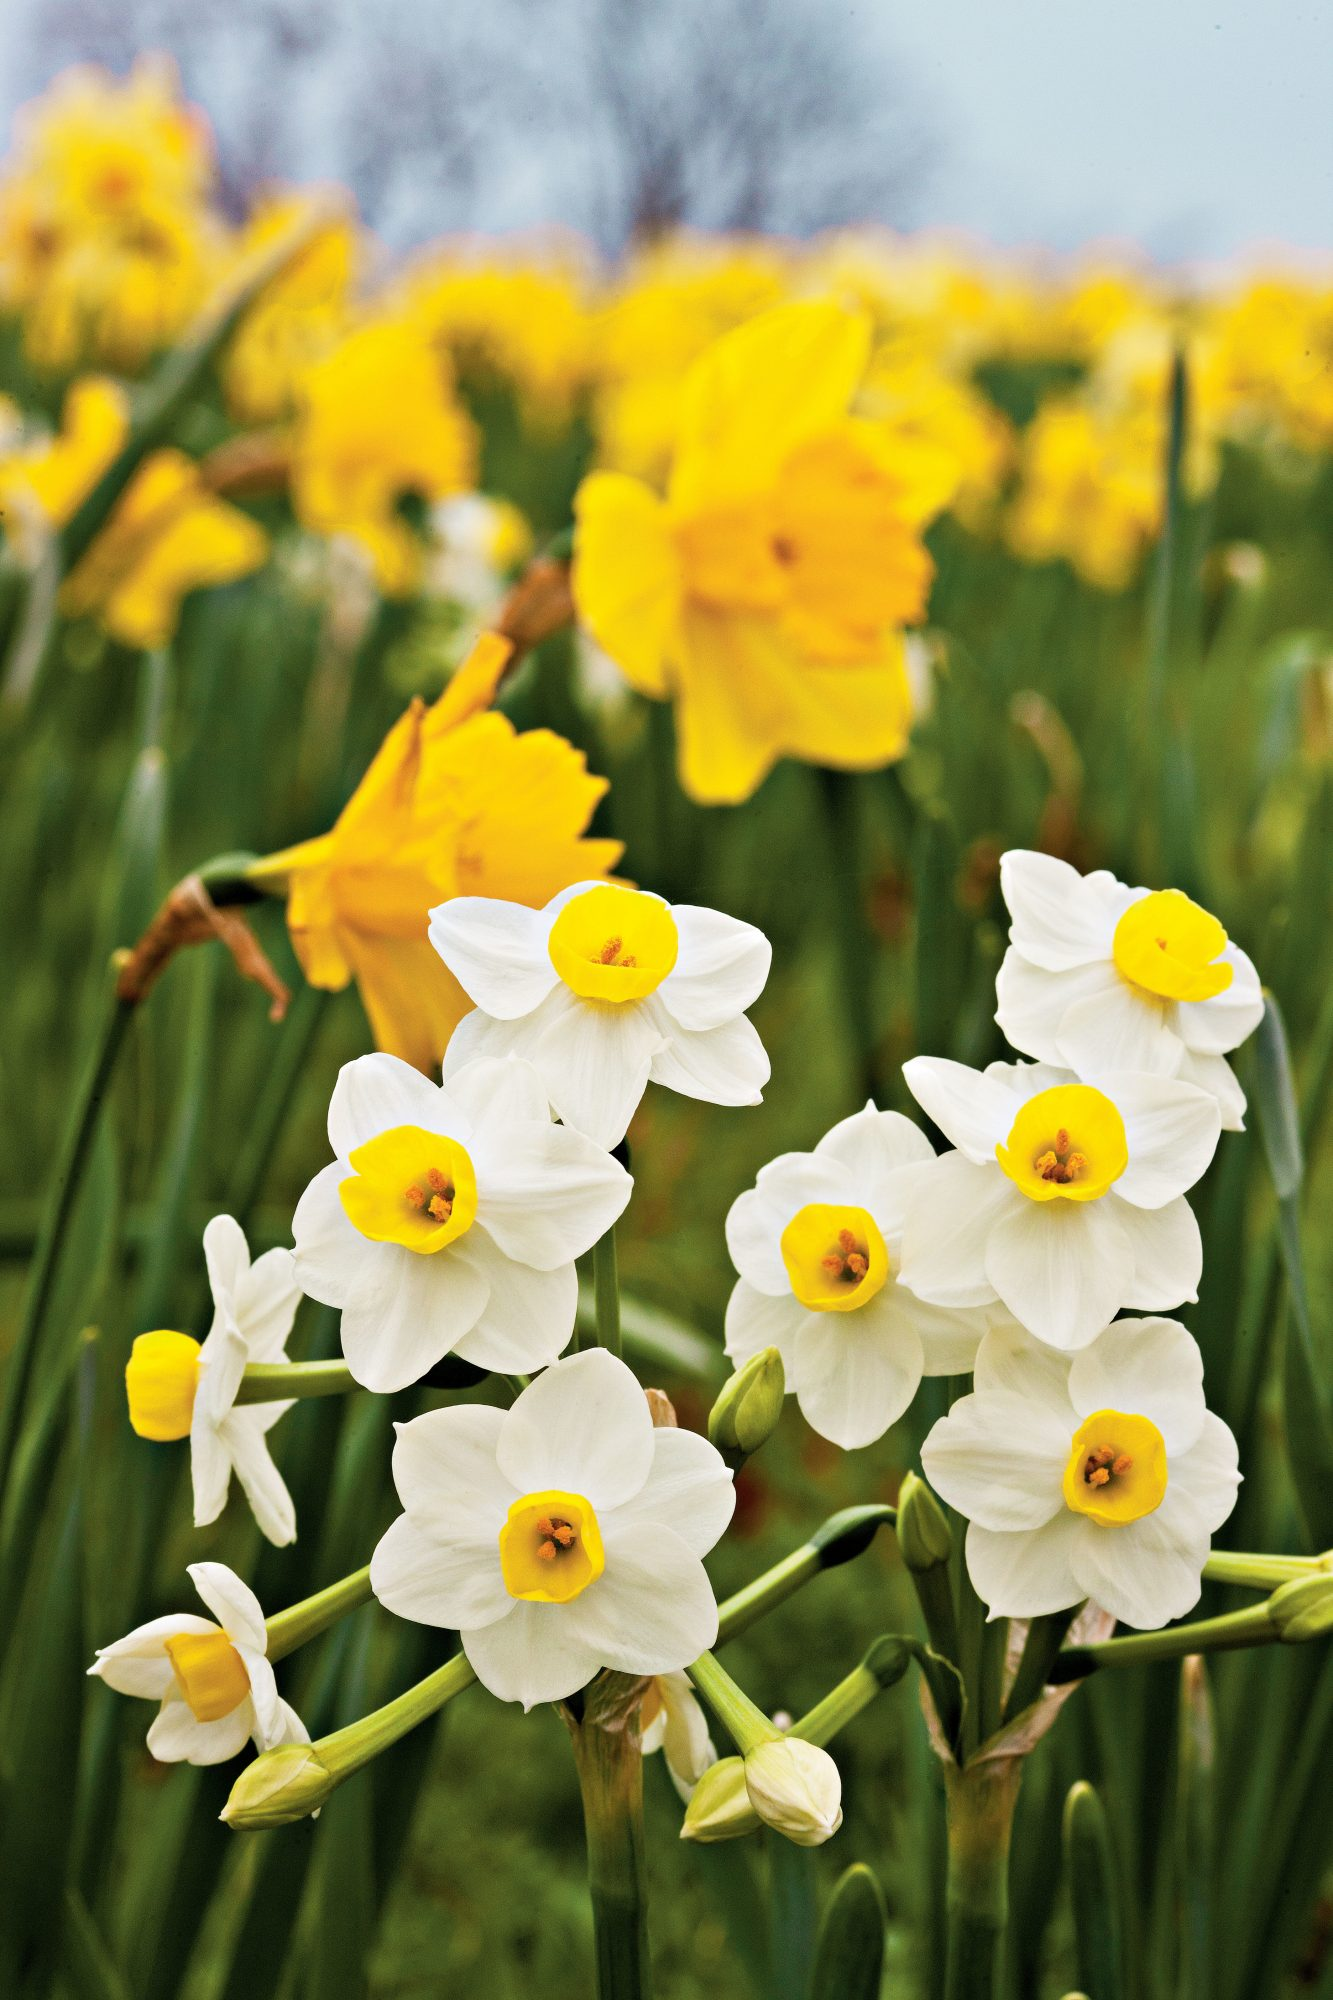 Daffodil Flower Facts | Southern Living